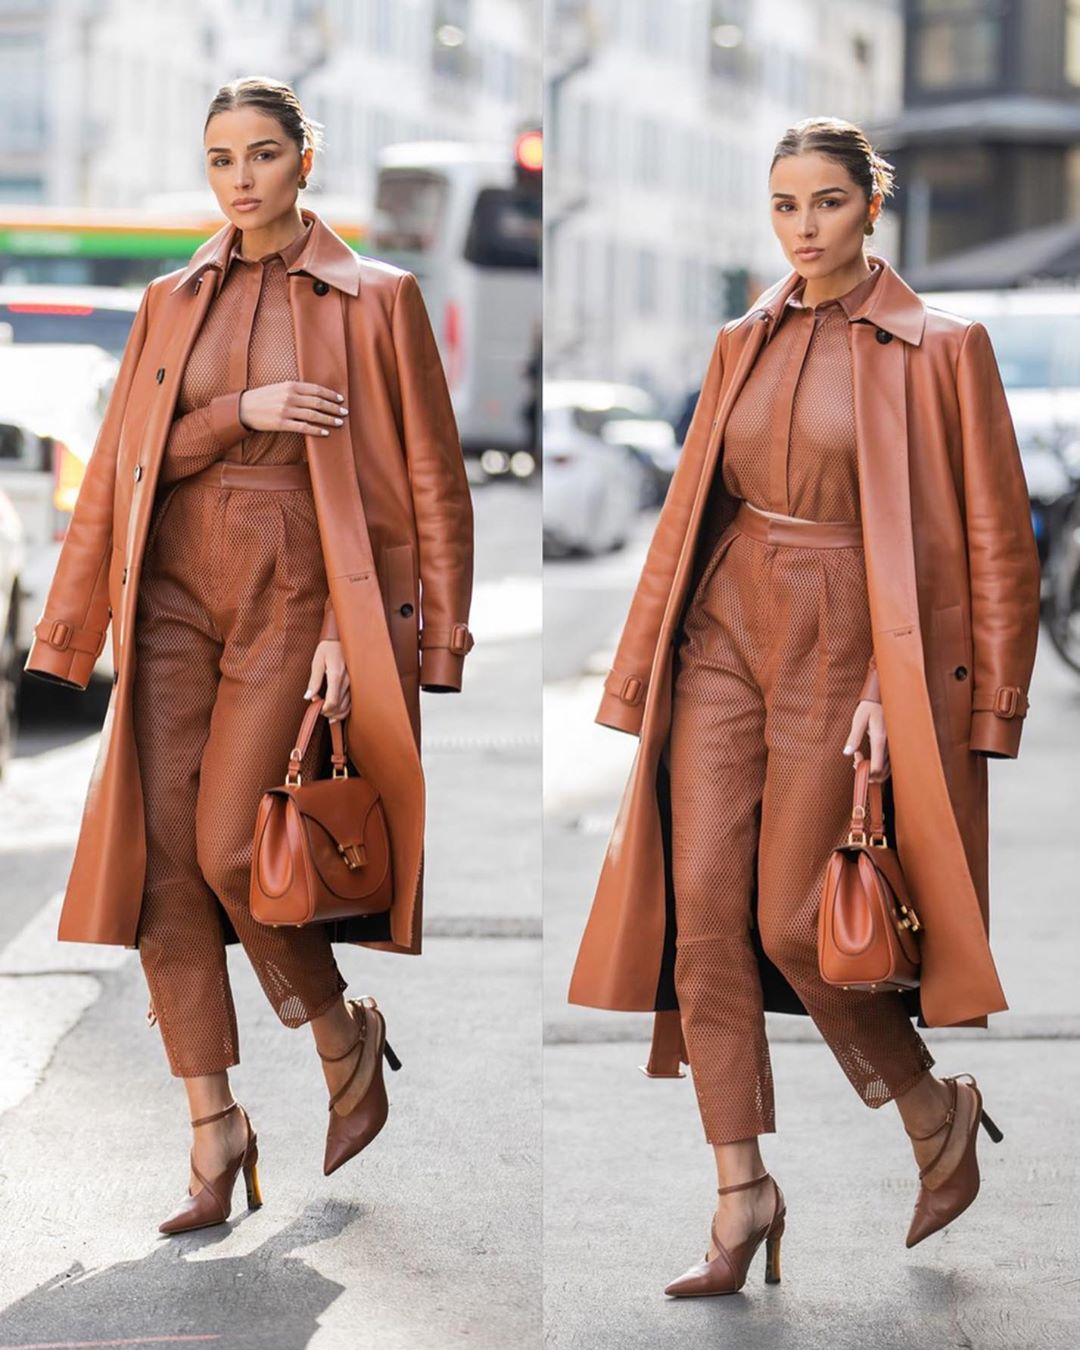 Olivia Culpo wearing narrow fit tan leather cropped hem ankle length pants